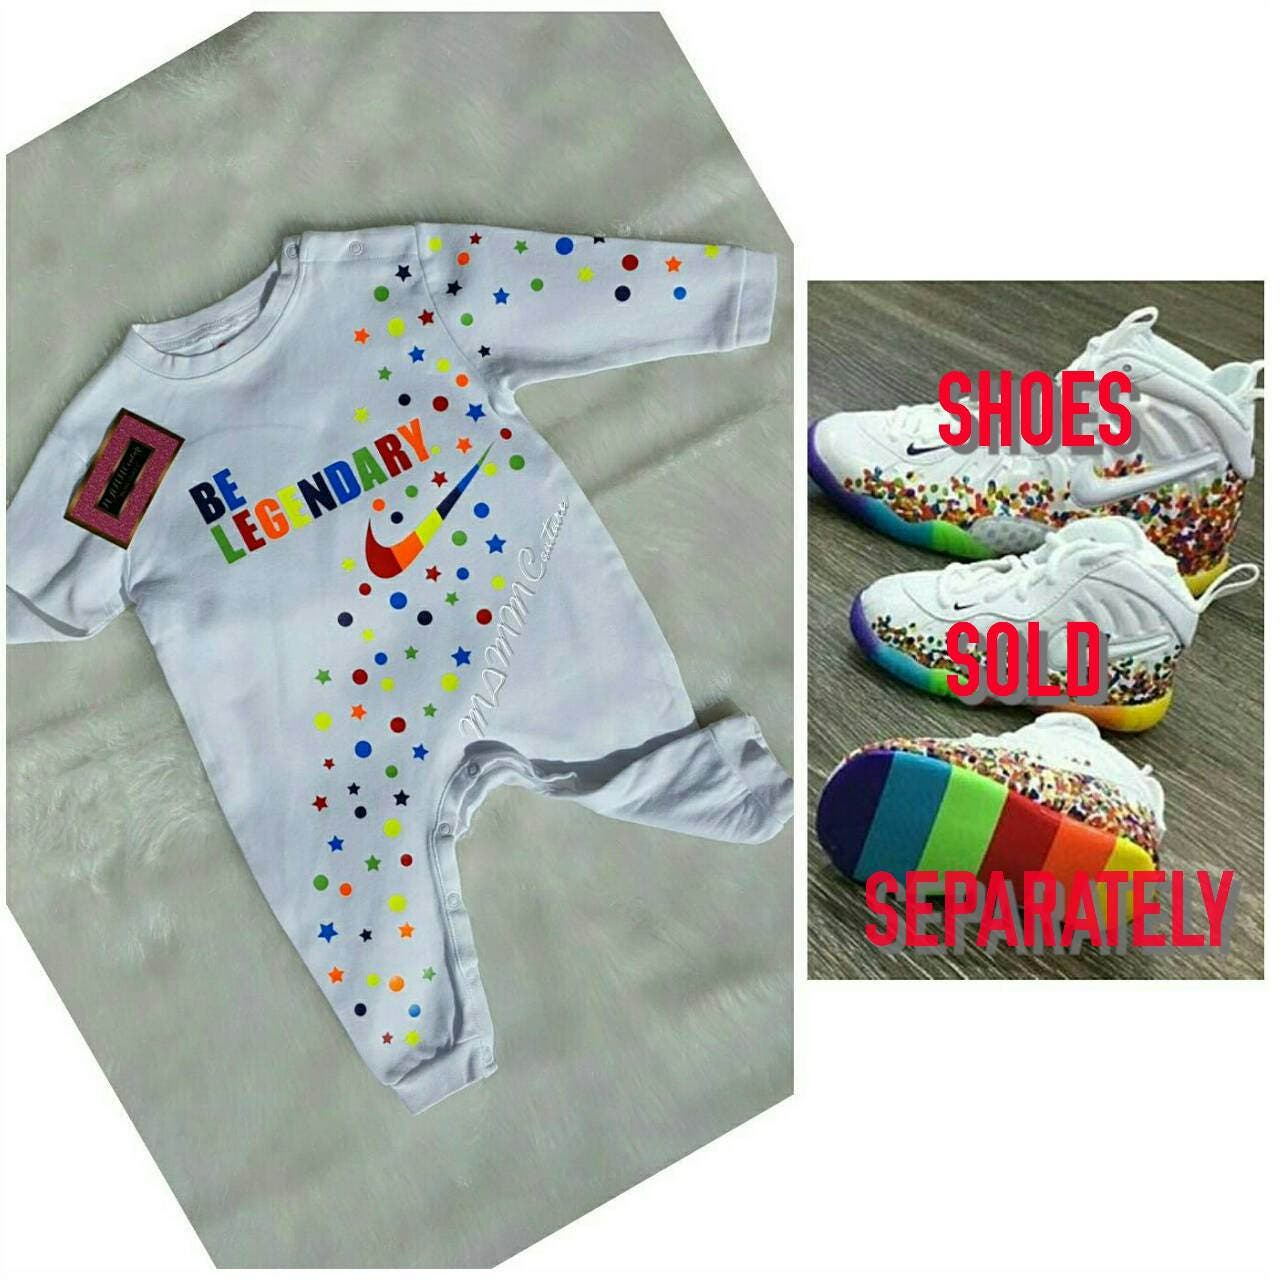 "e6b8552b9a229 ... ""Fruity Pebble"" Foamposites For Your Kids Tomorrow  Baby romper"